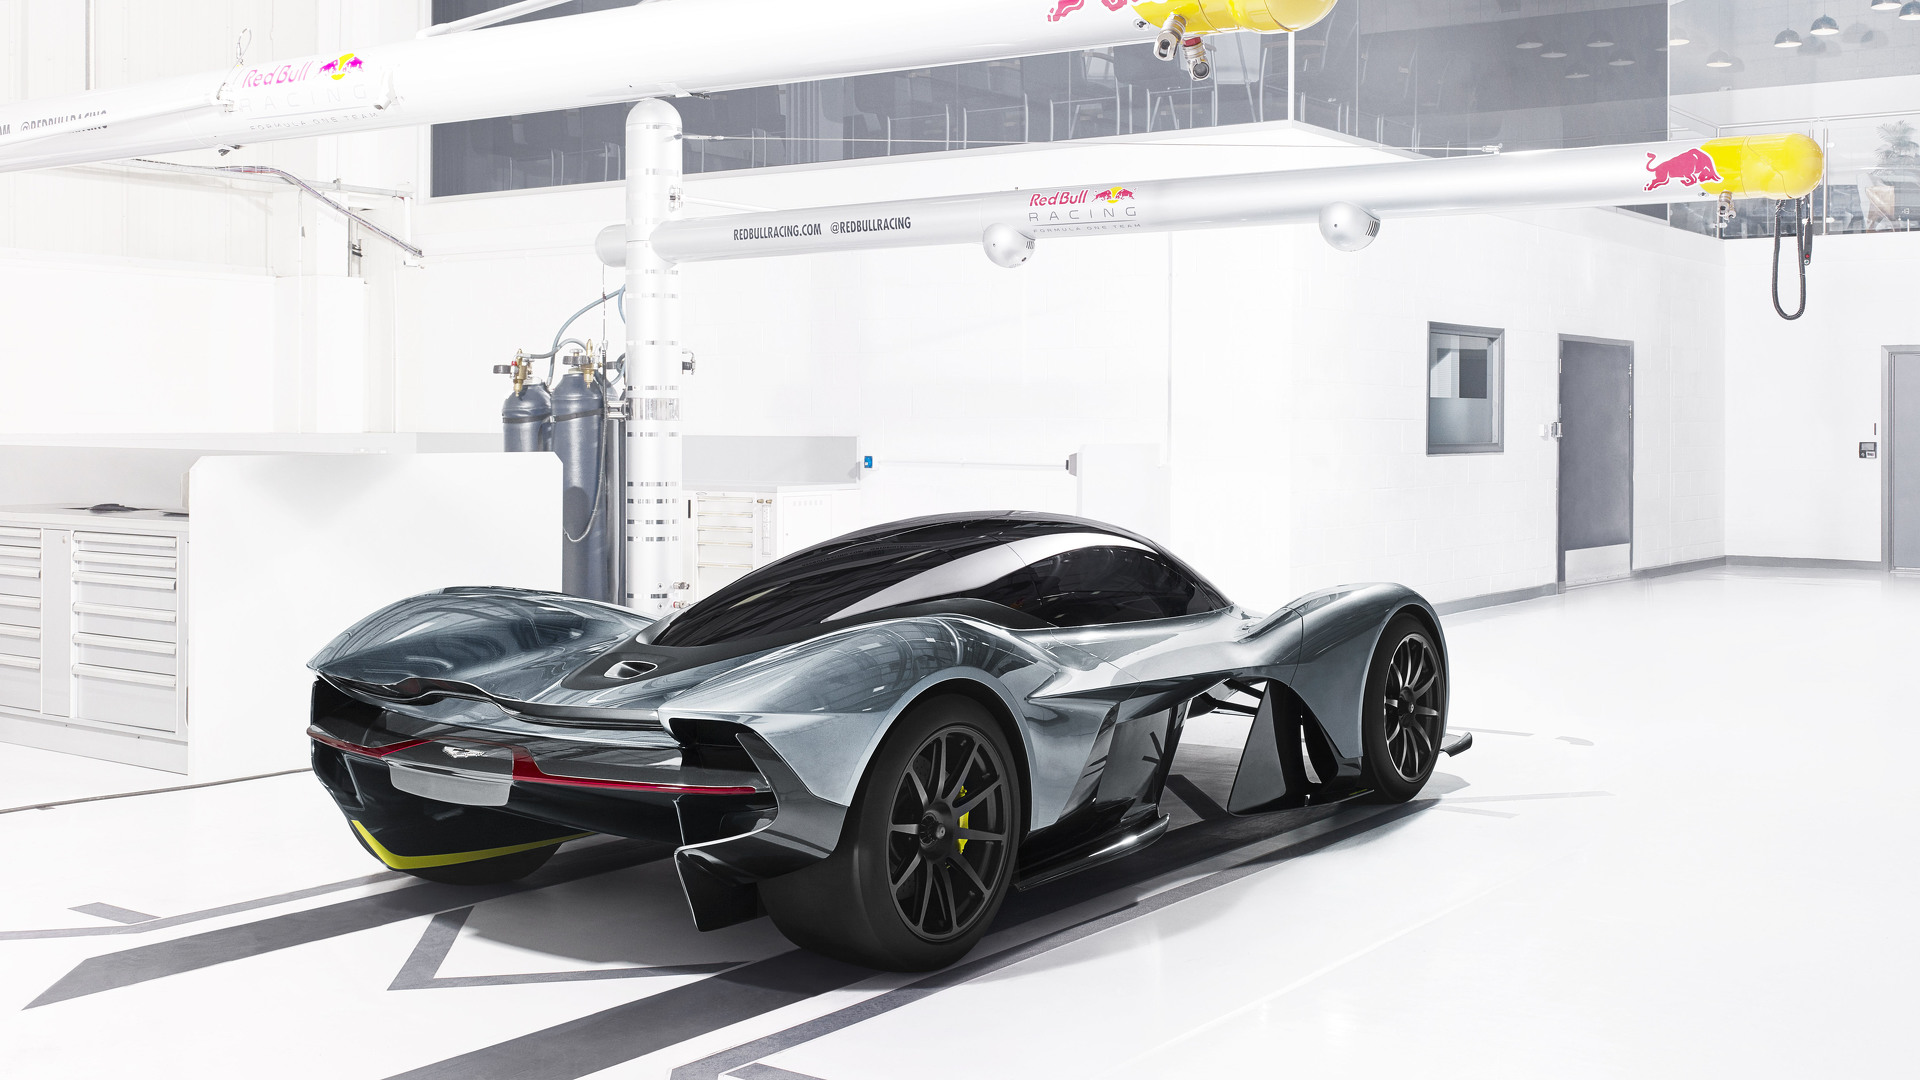 Aston Martin Red Bull Hypercar New Details Divulged 0 200 Mph In 10